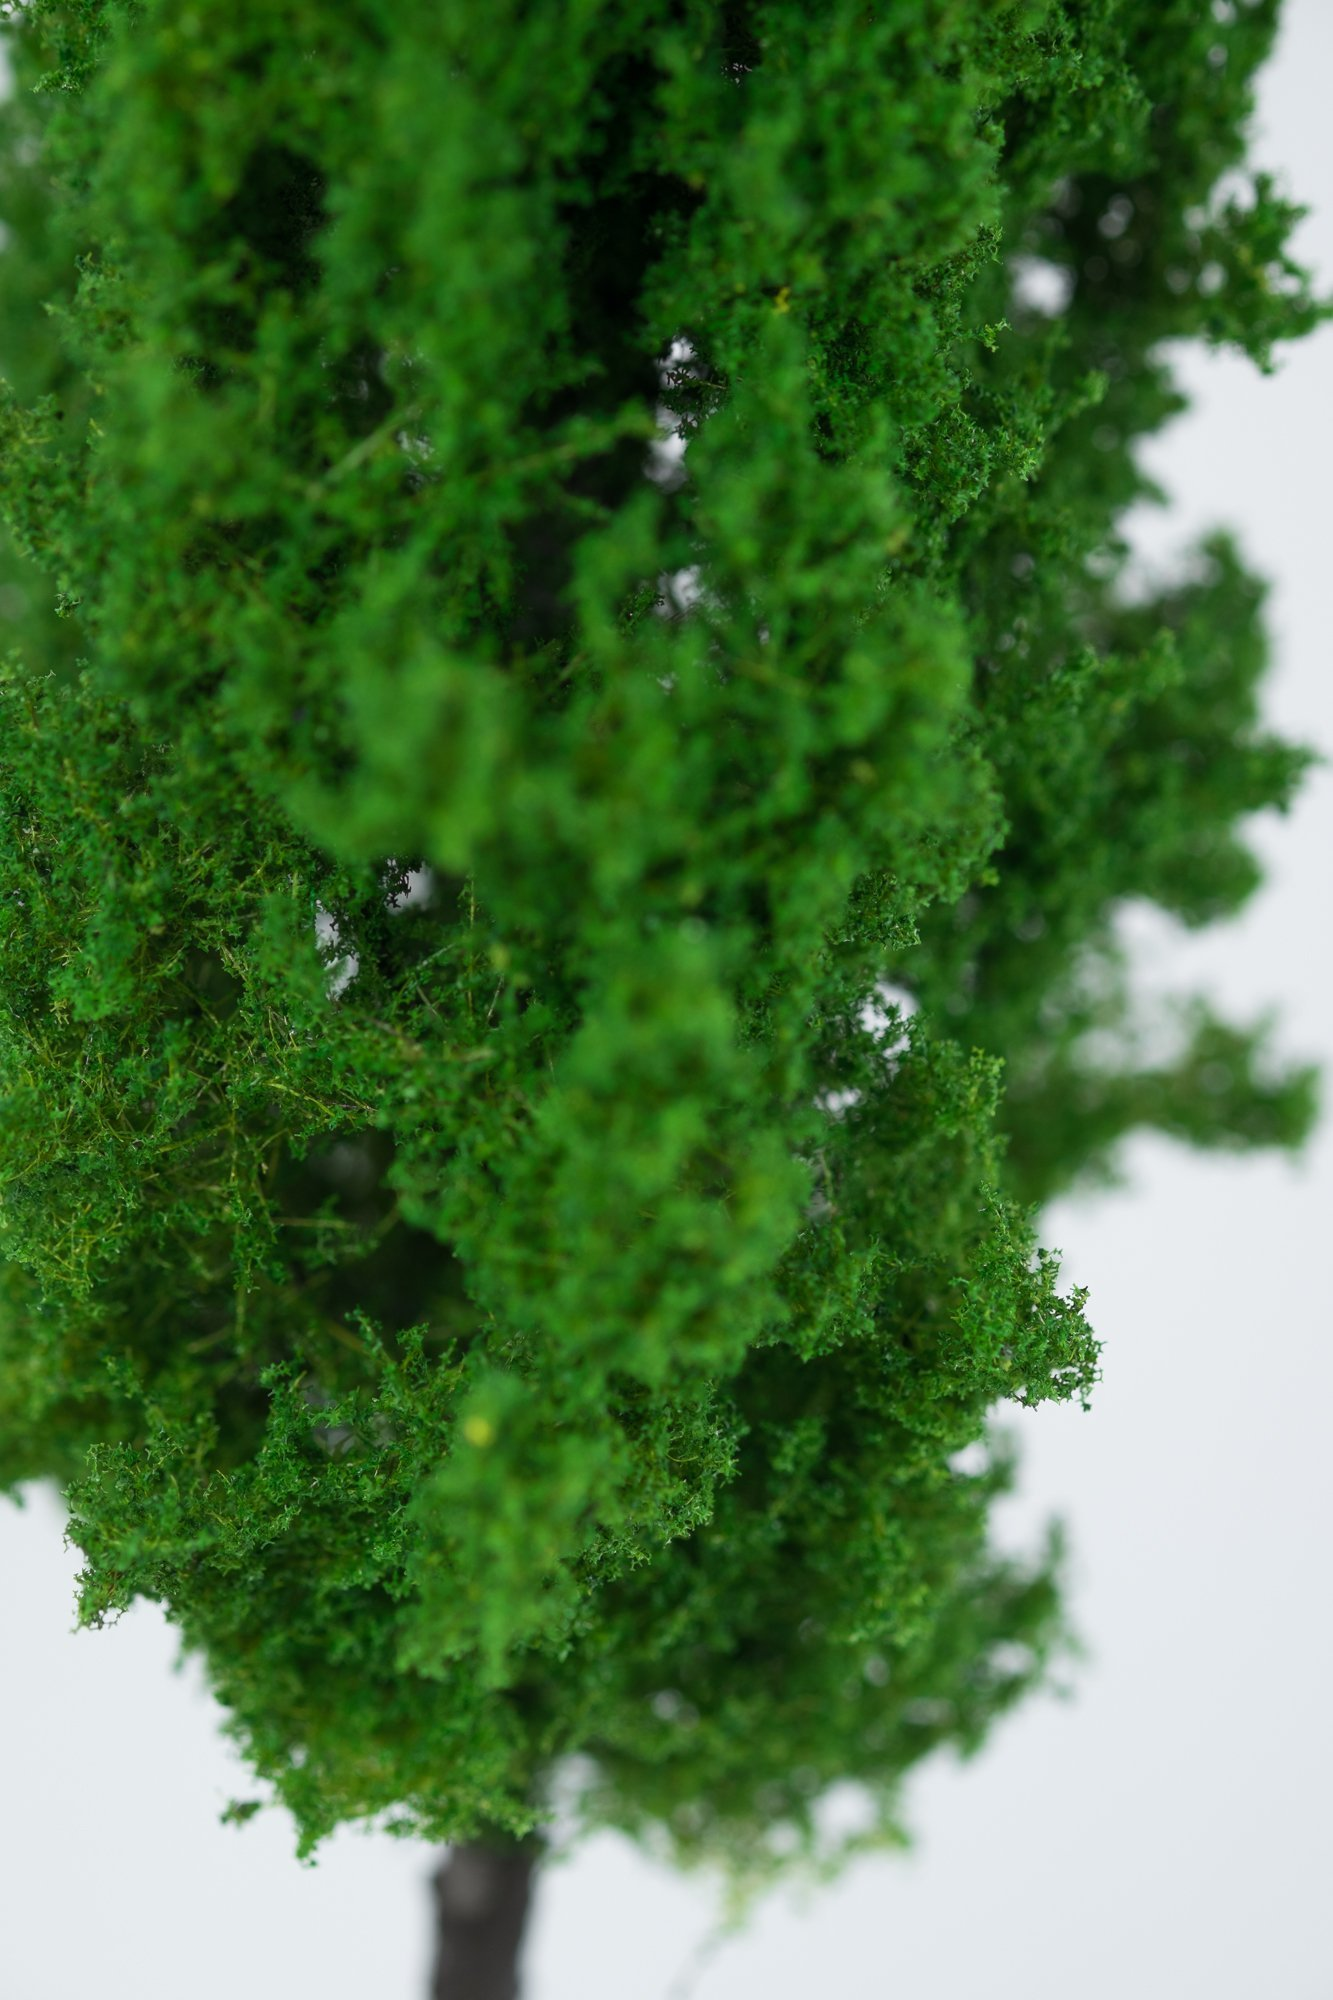 Closeup of foliage on poplar tree model. Made from high quality model supplies by Primo Models.